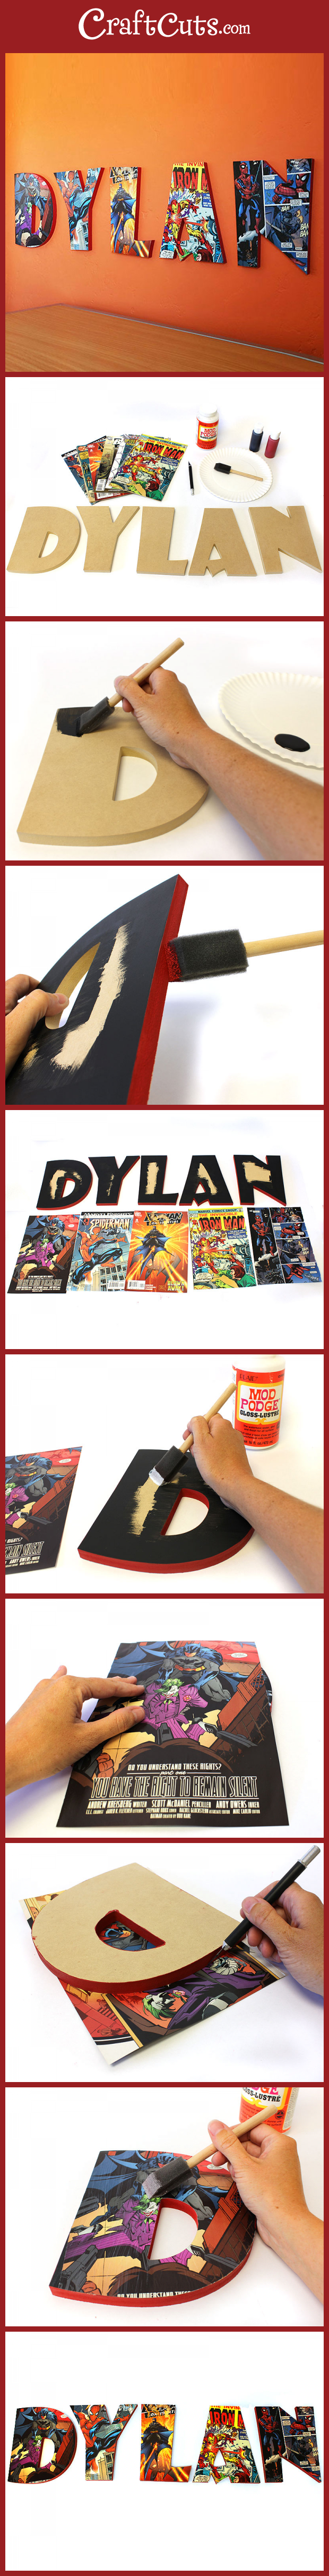 How to Make DIY Comic Book Letters Craftcuts.com